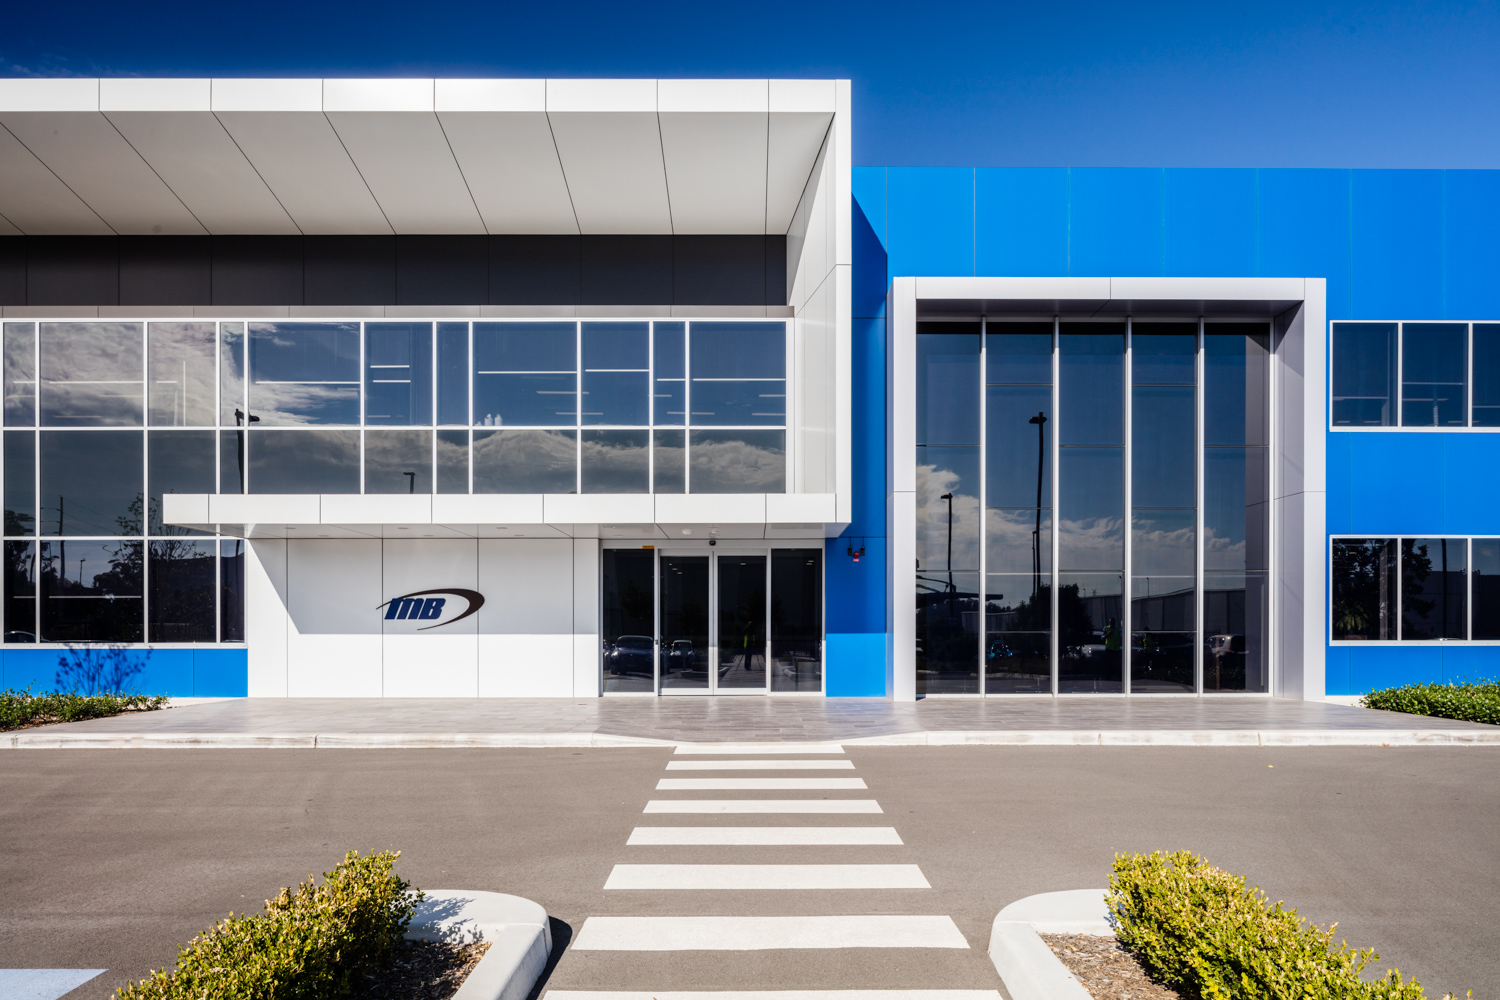 HORSELY DRIVE BUSINESS PARK FOR FRASERS PROPERTY